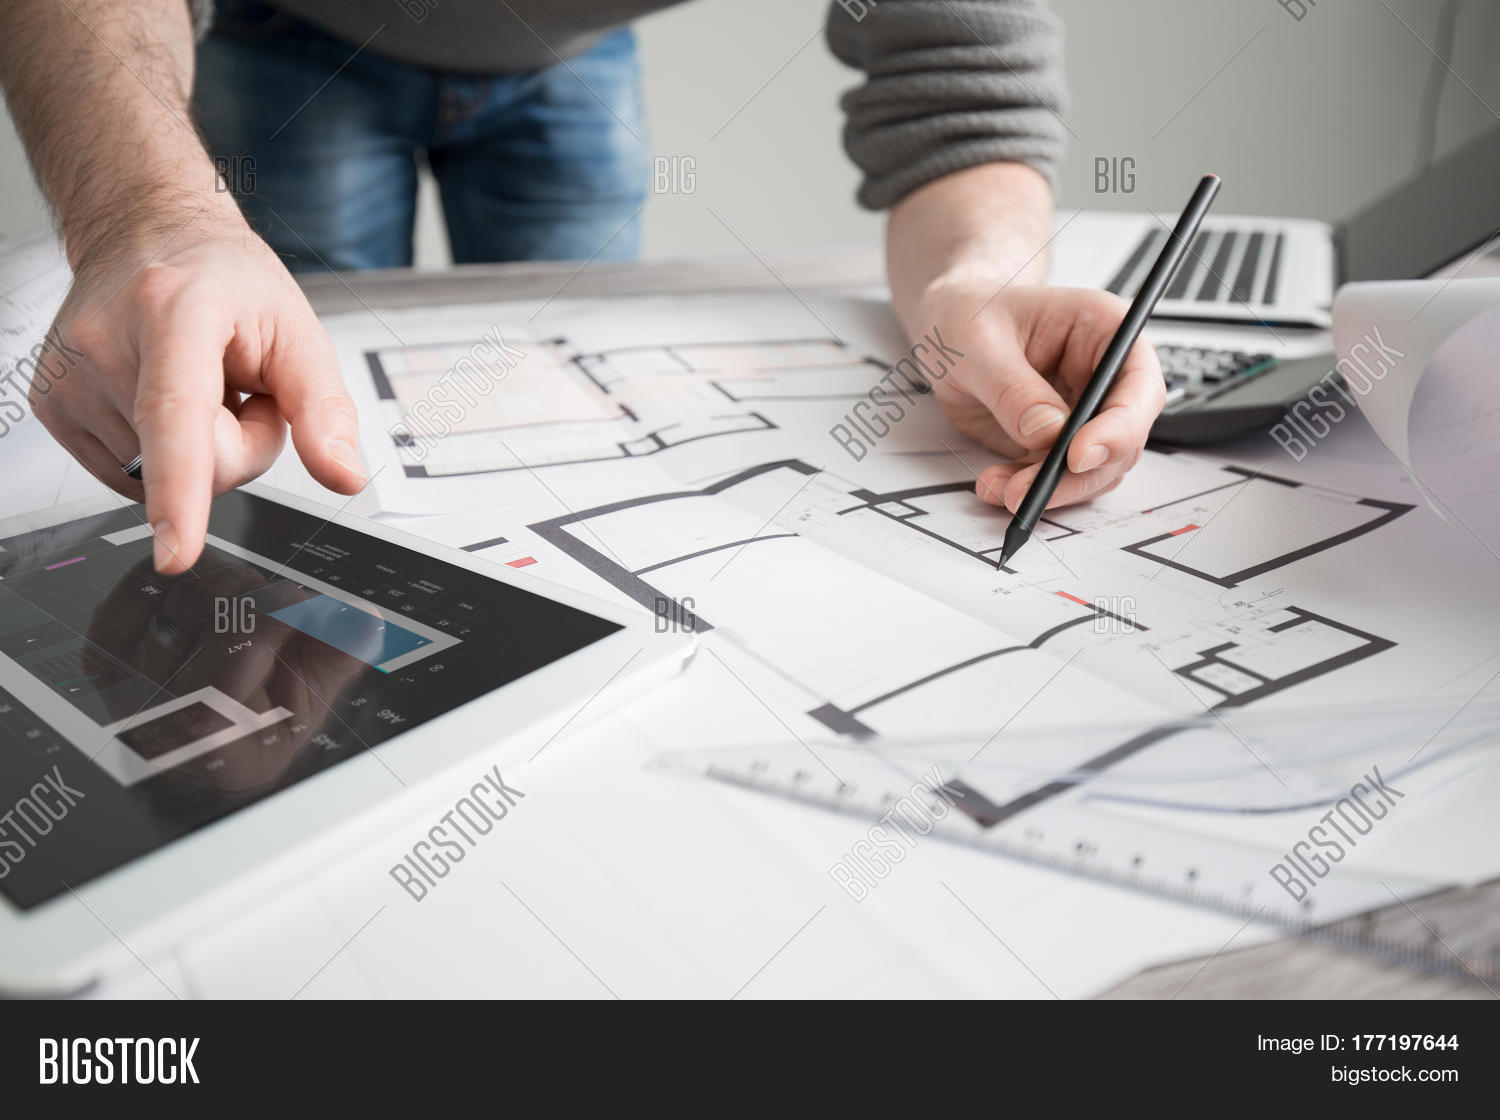 Imagen y foto architect architecture drawing bigstock architect architecture drawing project blueprint office business malvernweather Image collections